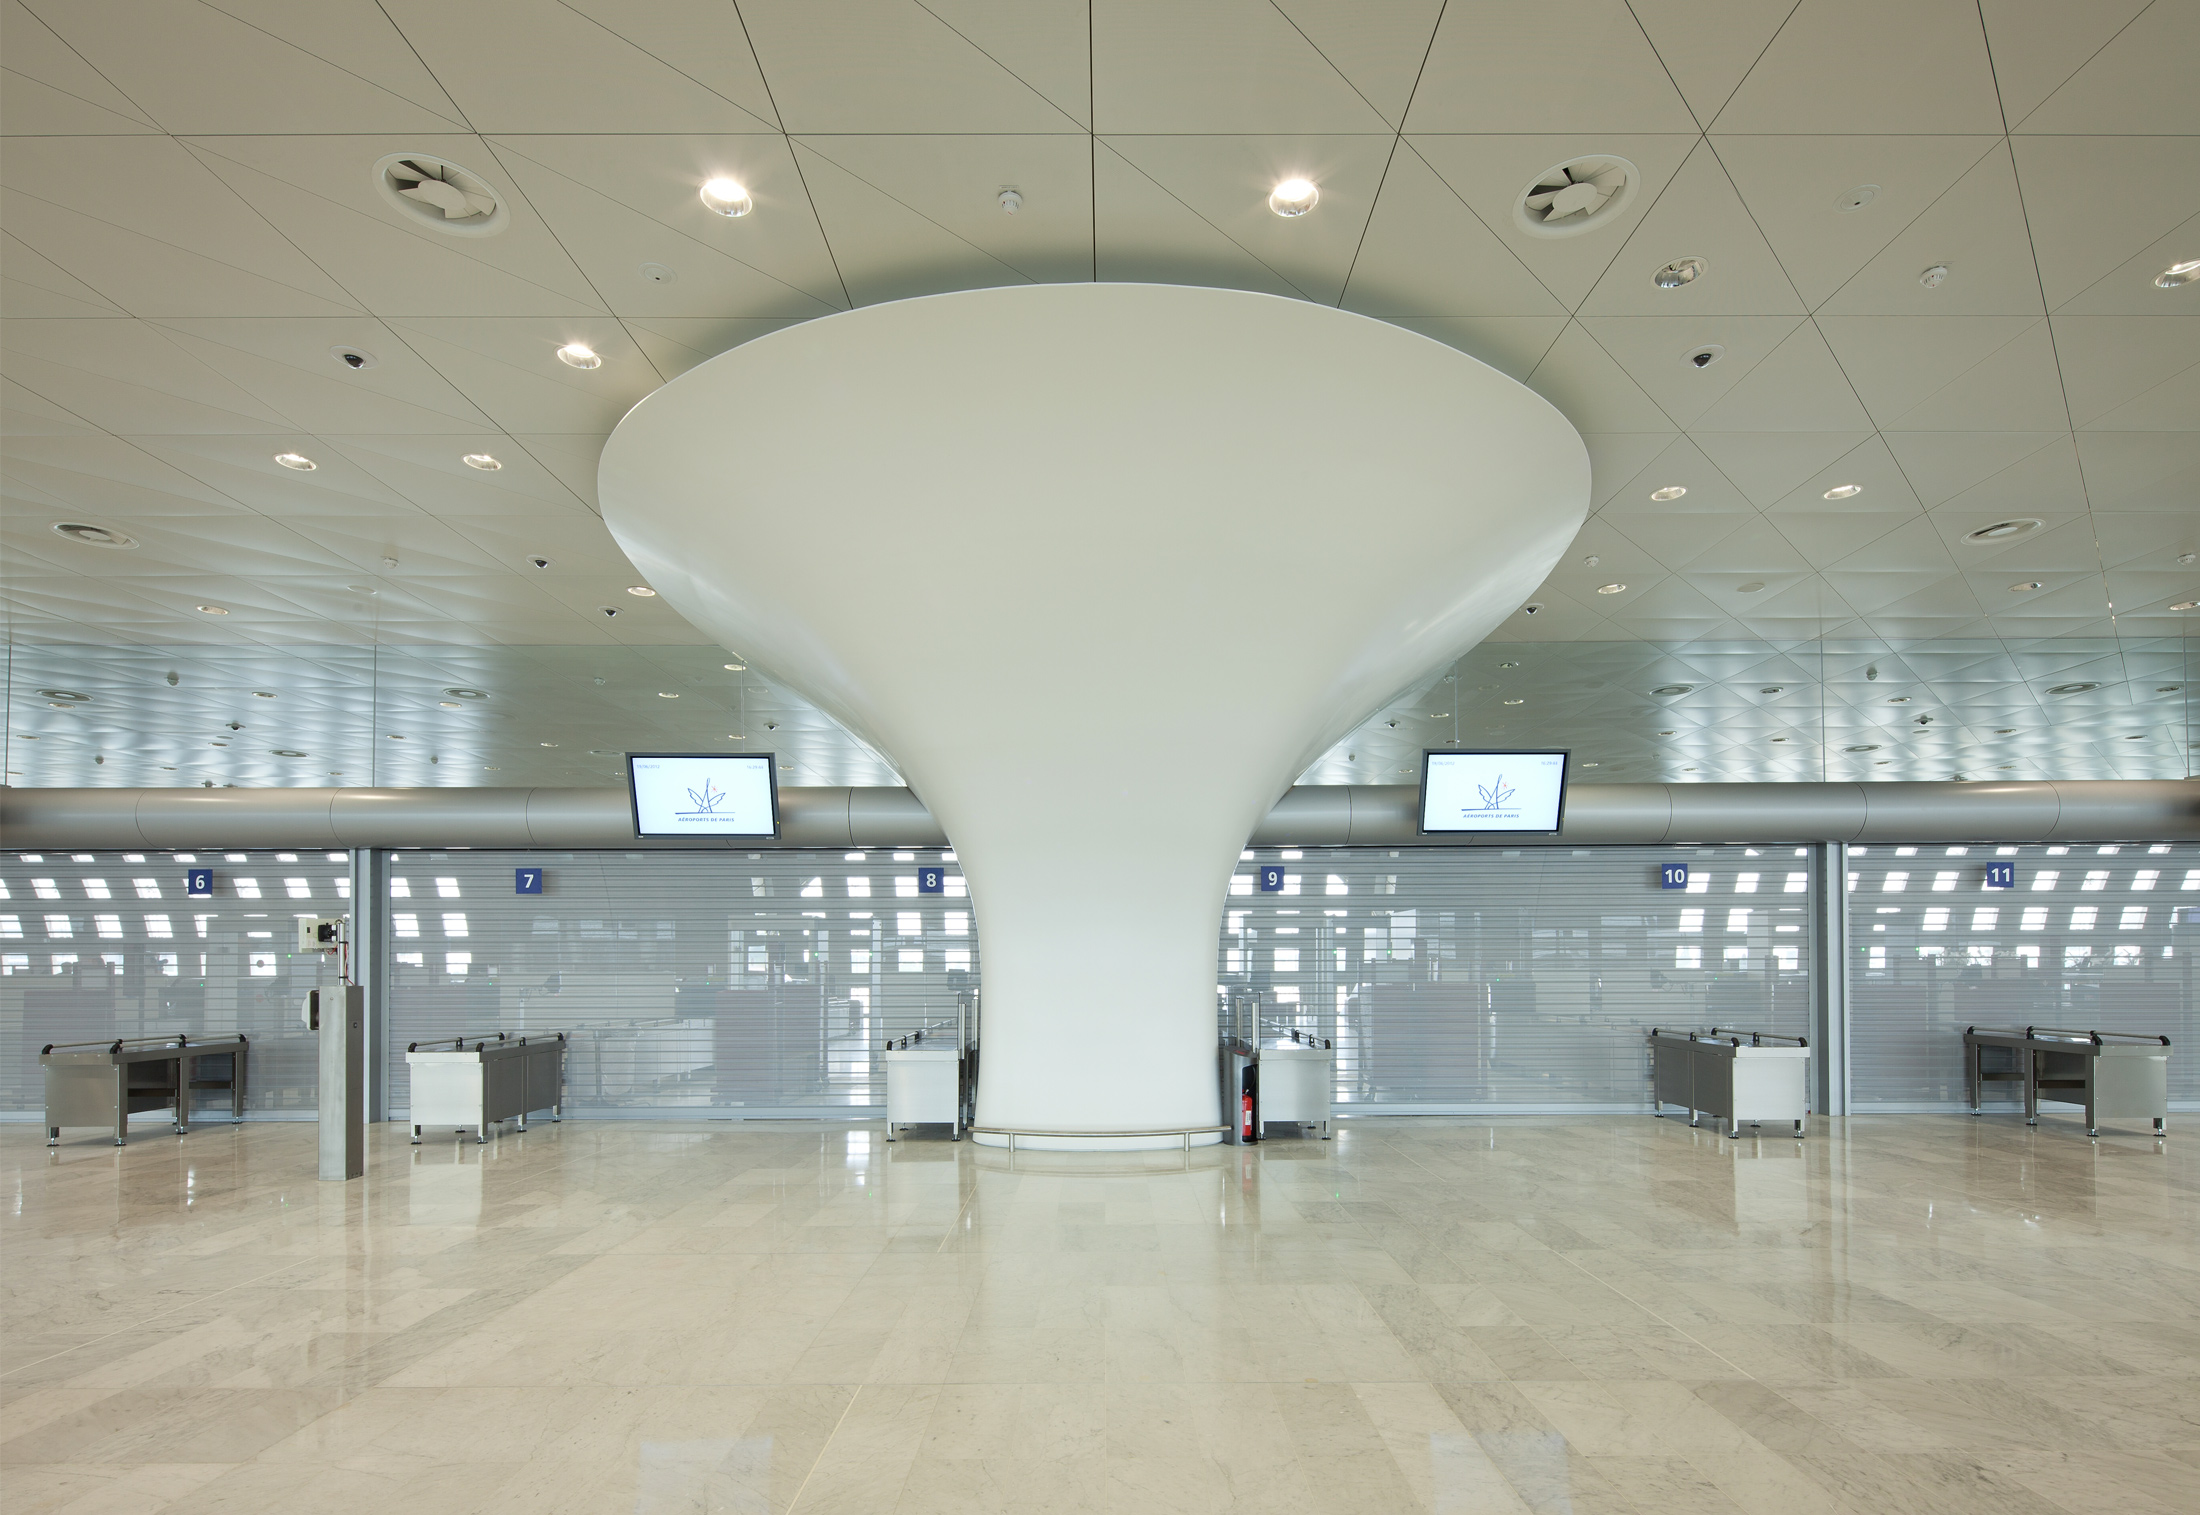 Clads Terminal 2f Charles De Gaulle Airport Paris By Hi Macs Relay 3 Cdg